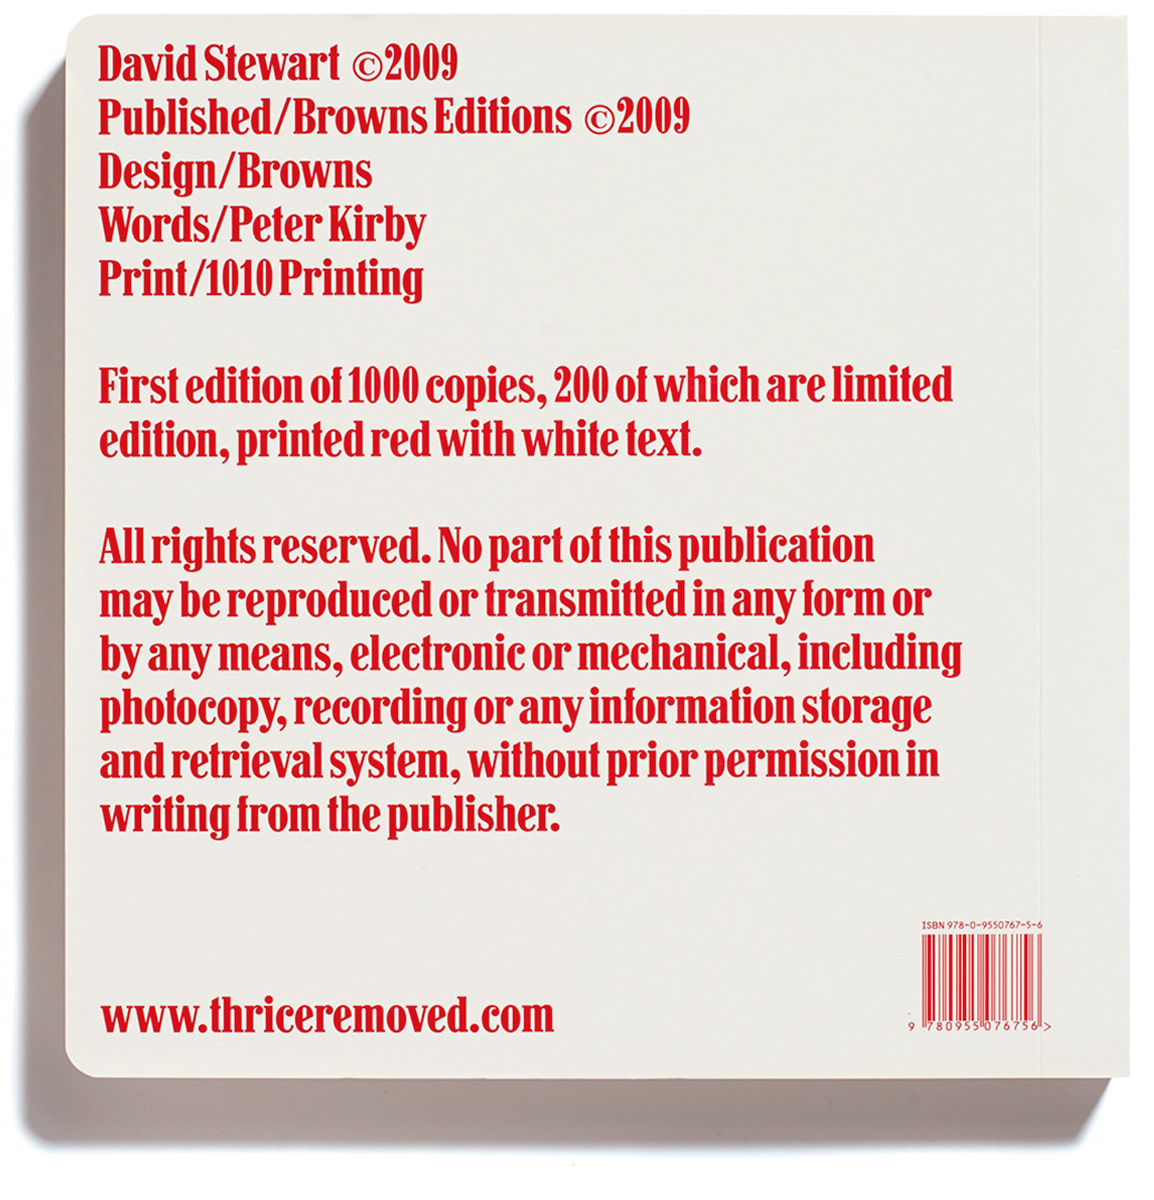 Browns Editions, Browns Editions Publishing, Browns Editions Books, Browns Editions David Stewart, Browns Editions Thrice Removed, Browns Editions David Stewart Thrice Removed